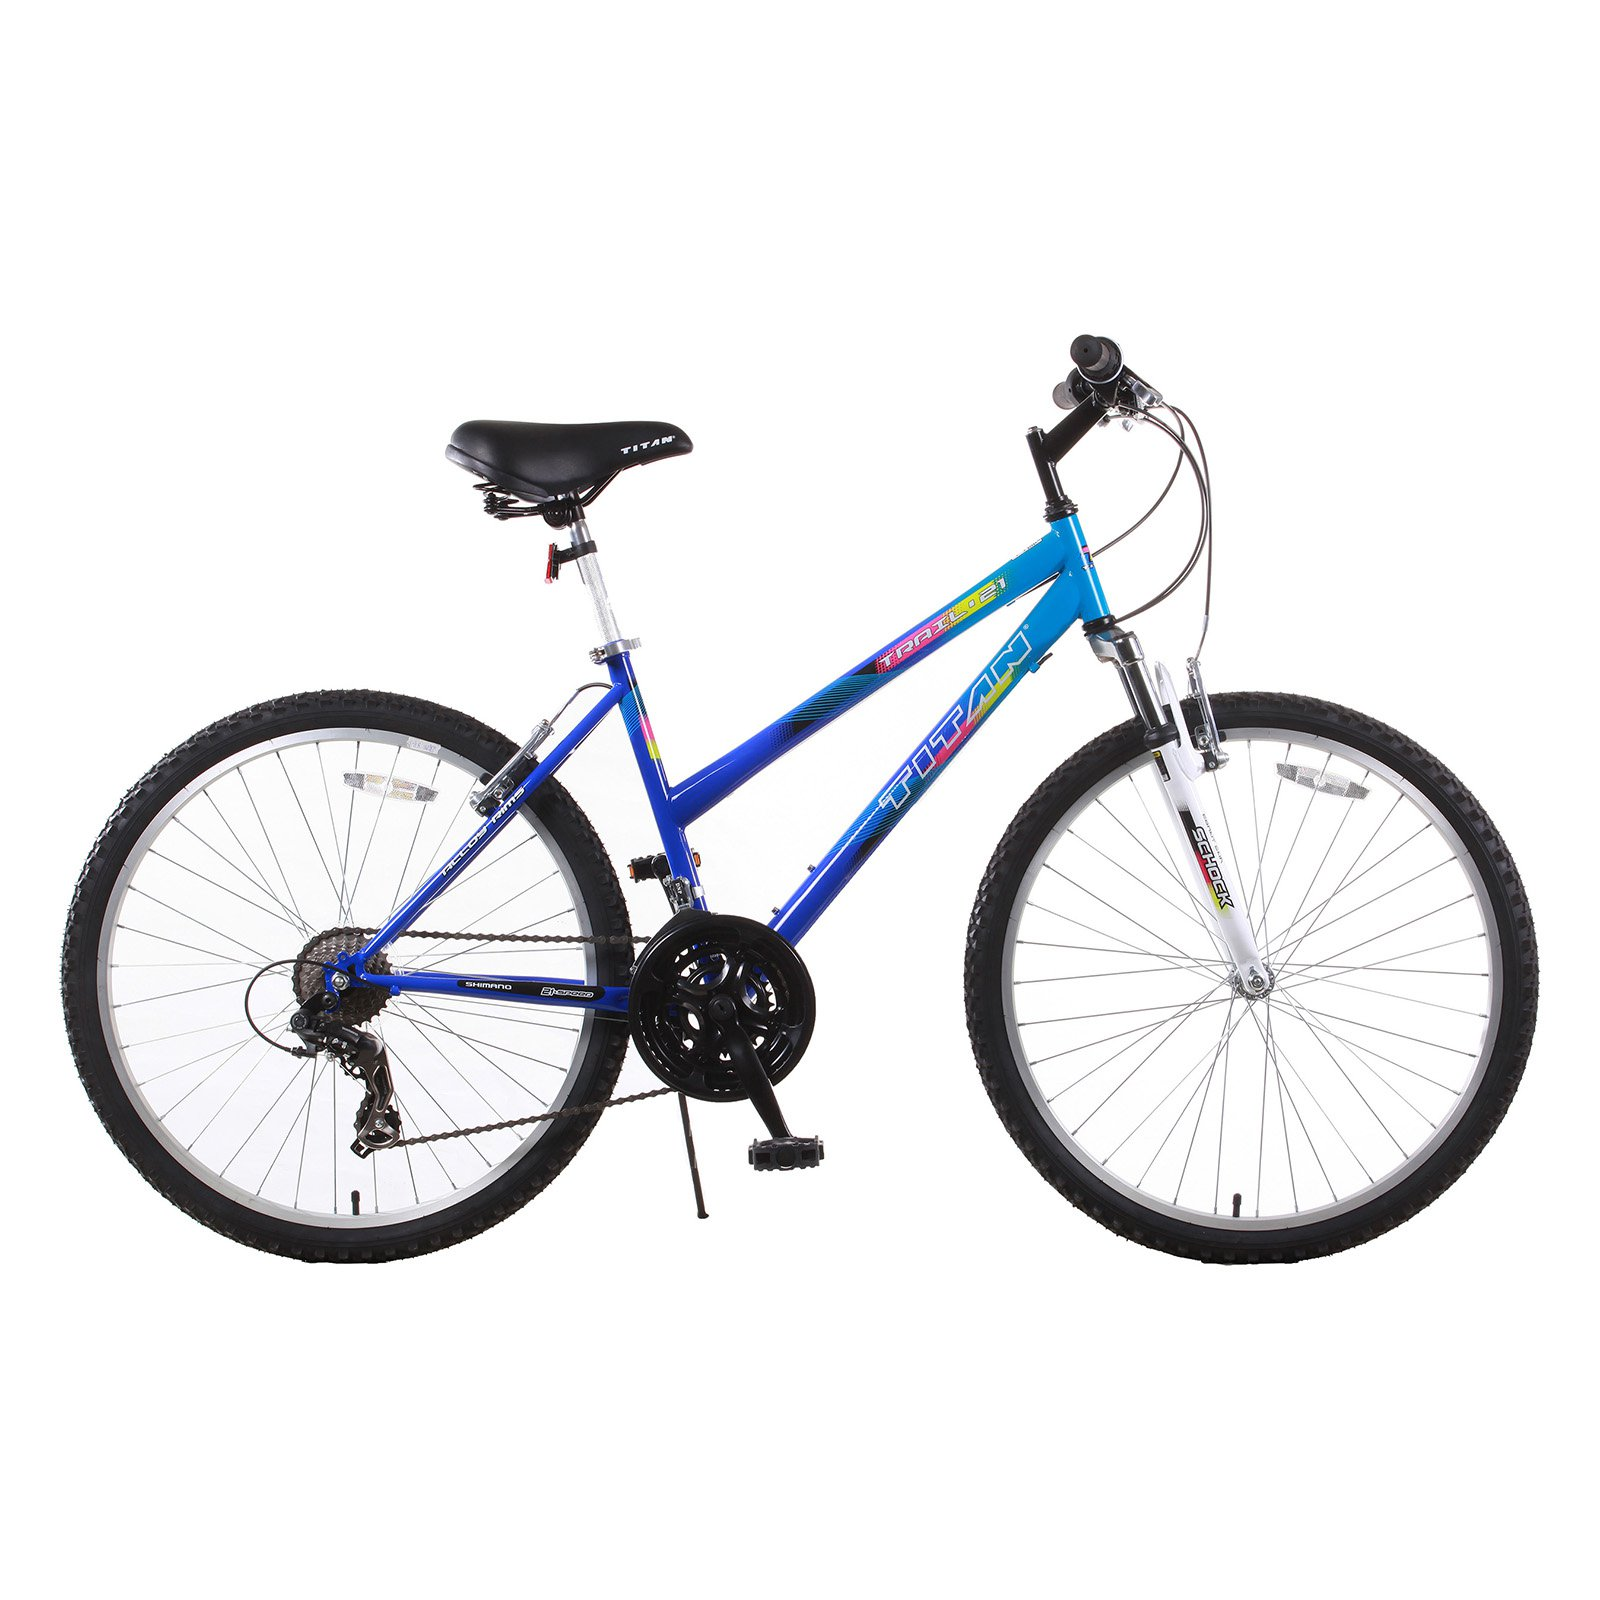 TITAN Trail 21-Speed Suspension Women's Mountain Bike with Front Shock, Blue